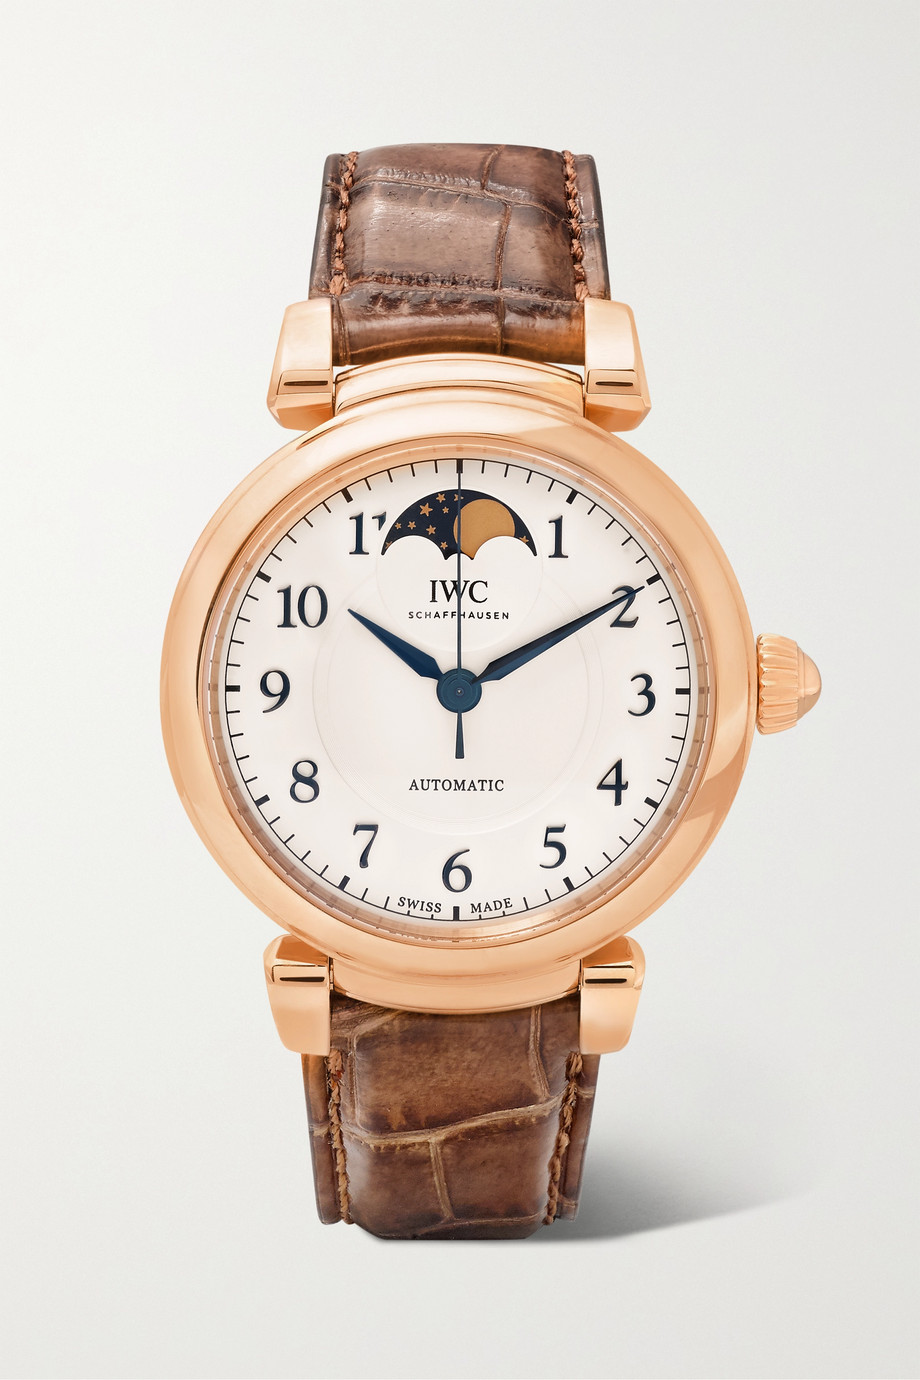 IWC SCHAFFHAUSEN Da Vinci Automatic Moon Phase 36mm 18-karat red gold and alligator watch